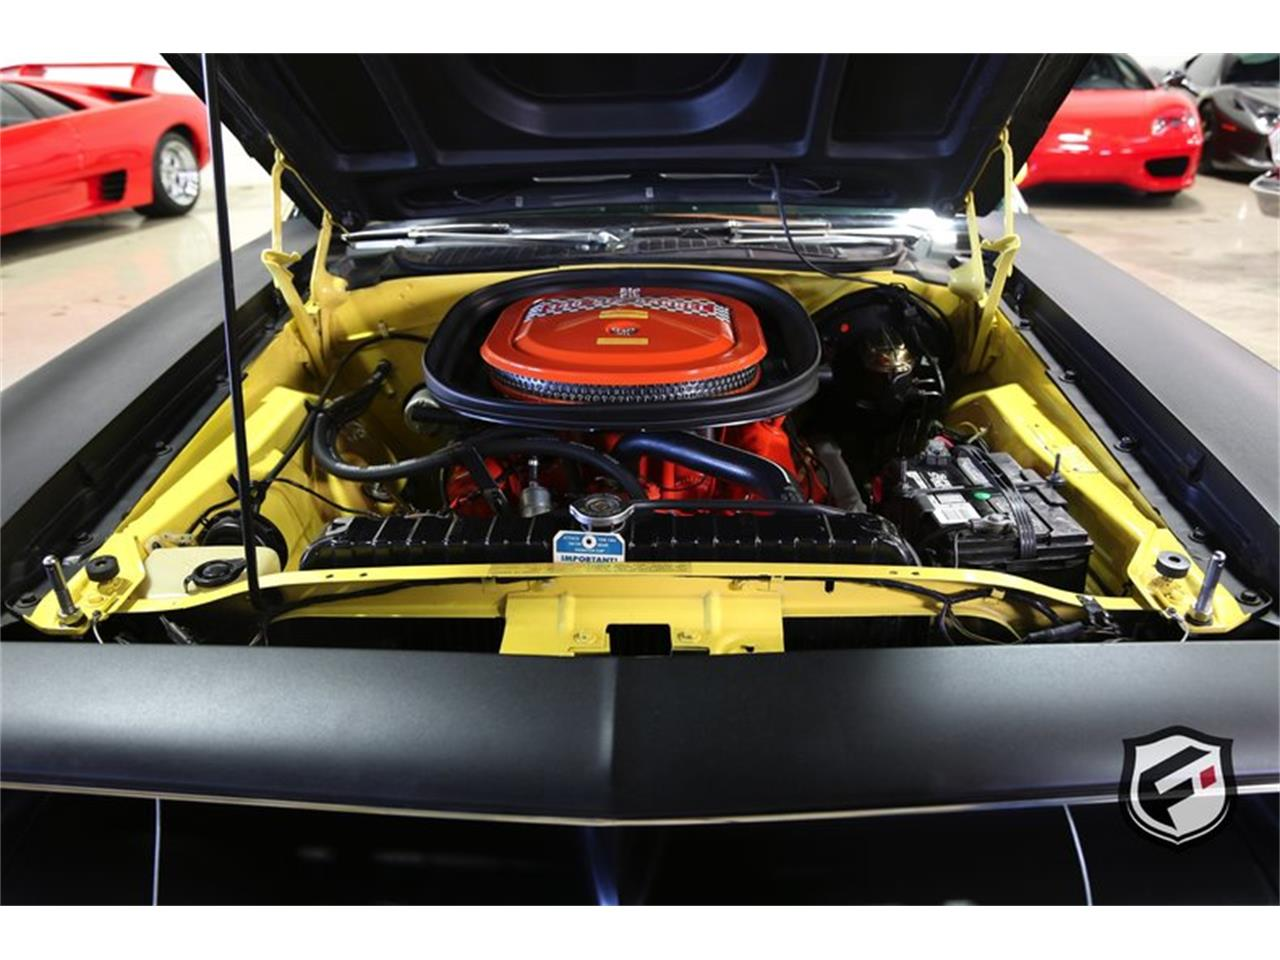 Large Picture of Classic '70 Plymouth Cuda located in California - $109,900.00 - MBSV